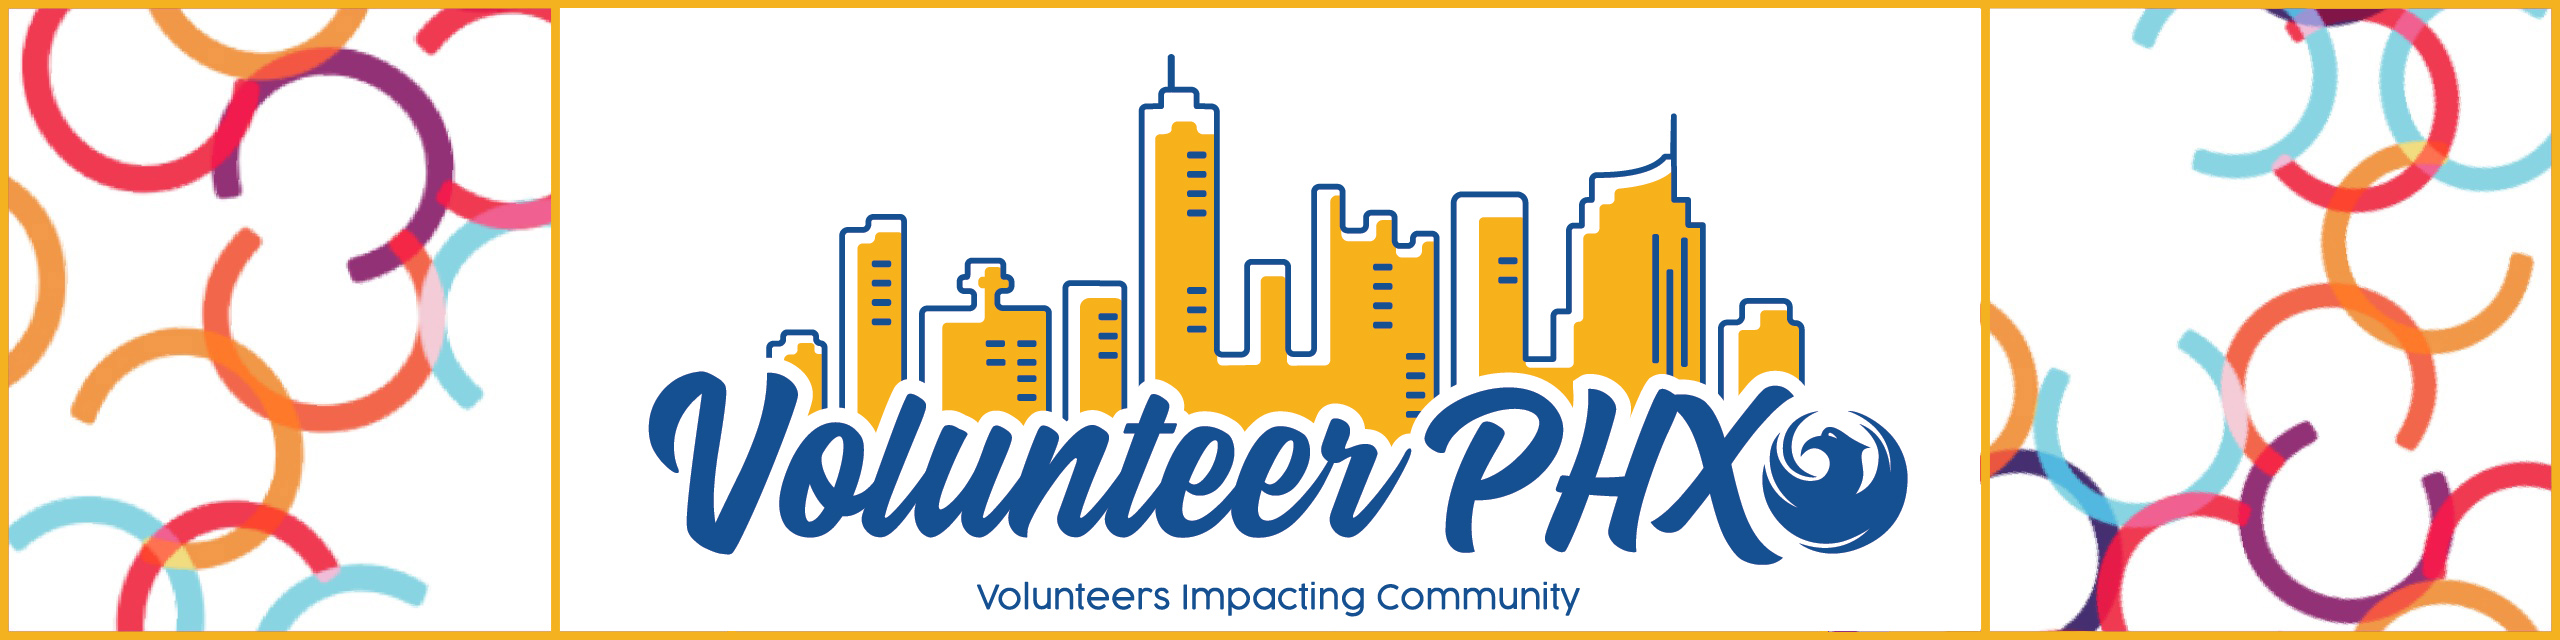 Volunteer PHX logo and banner